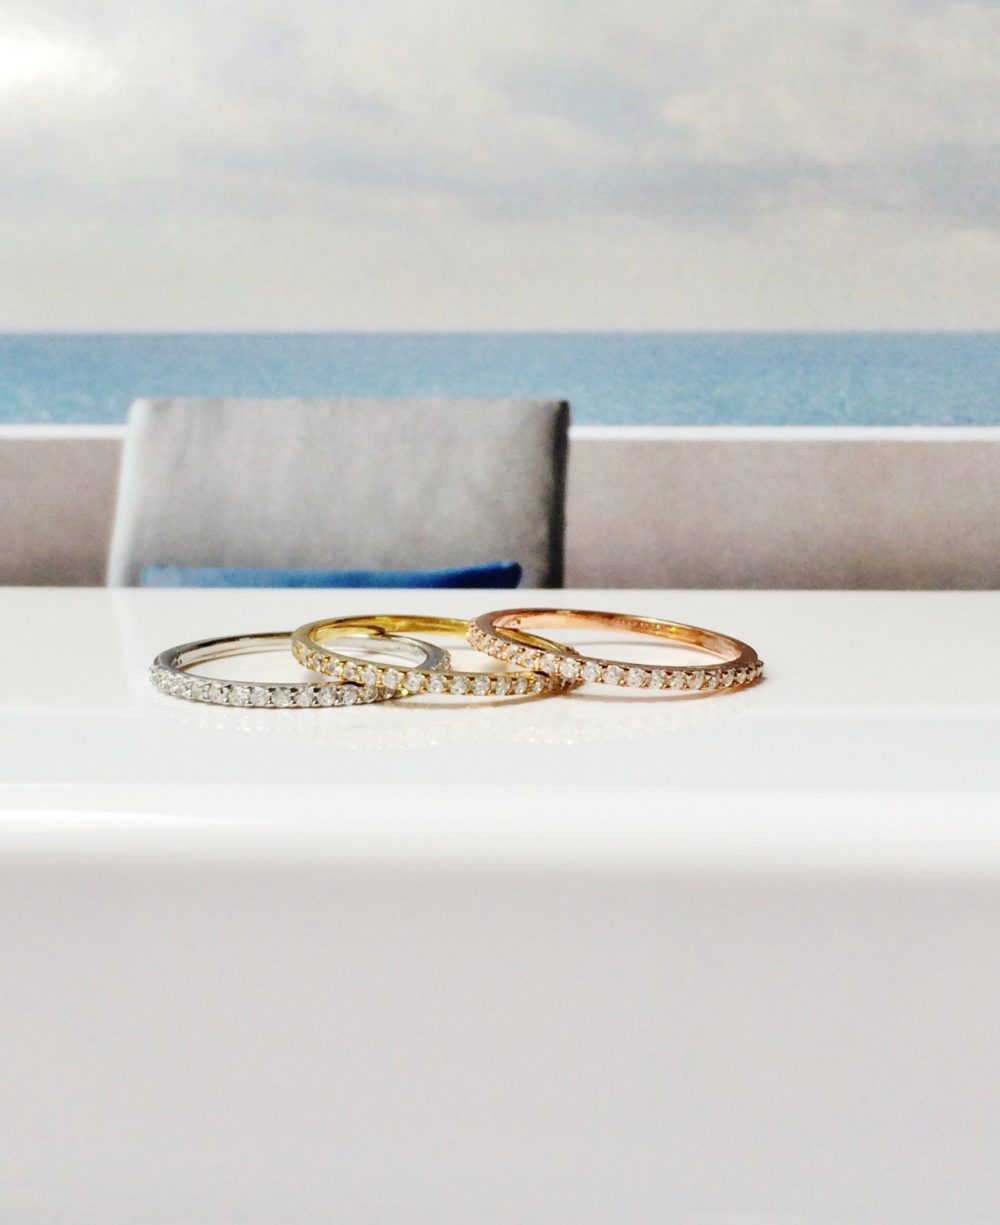 Clearance Sale Eternity Band Ring, Stackable Rings, Gold Engagement Silver Gifts, Ring On Sale, Eternity Ring